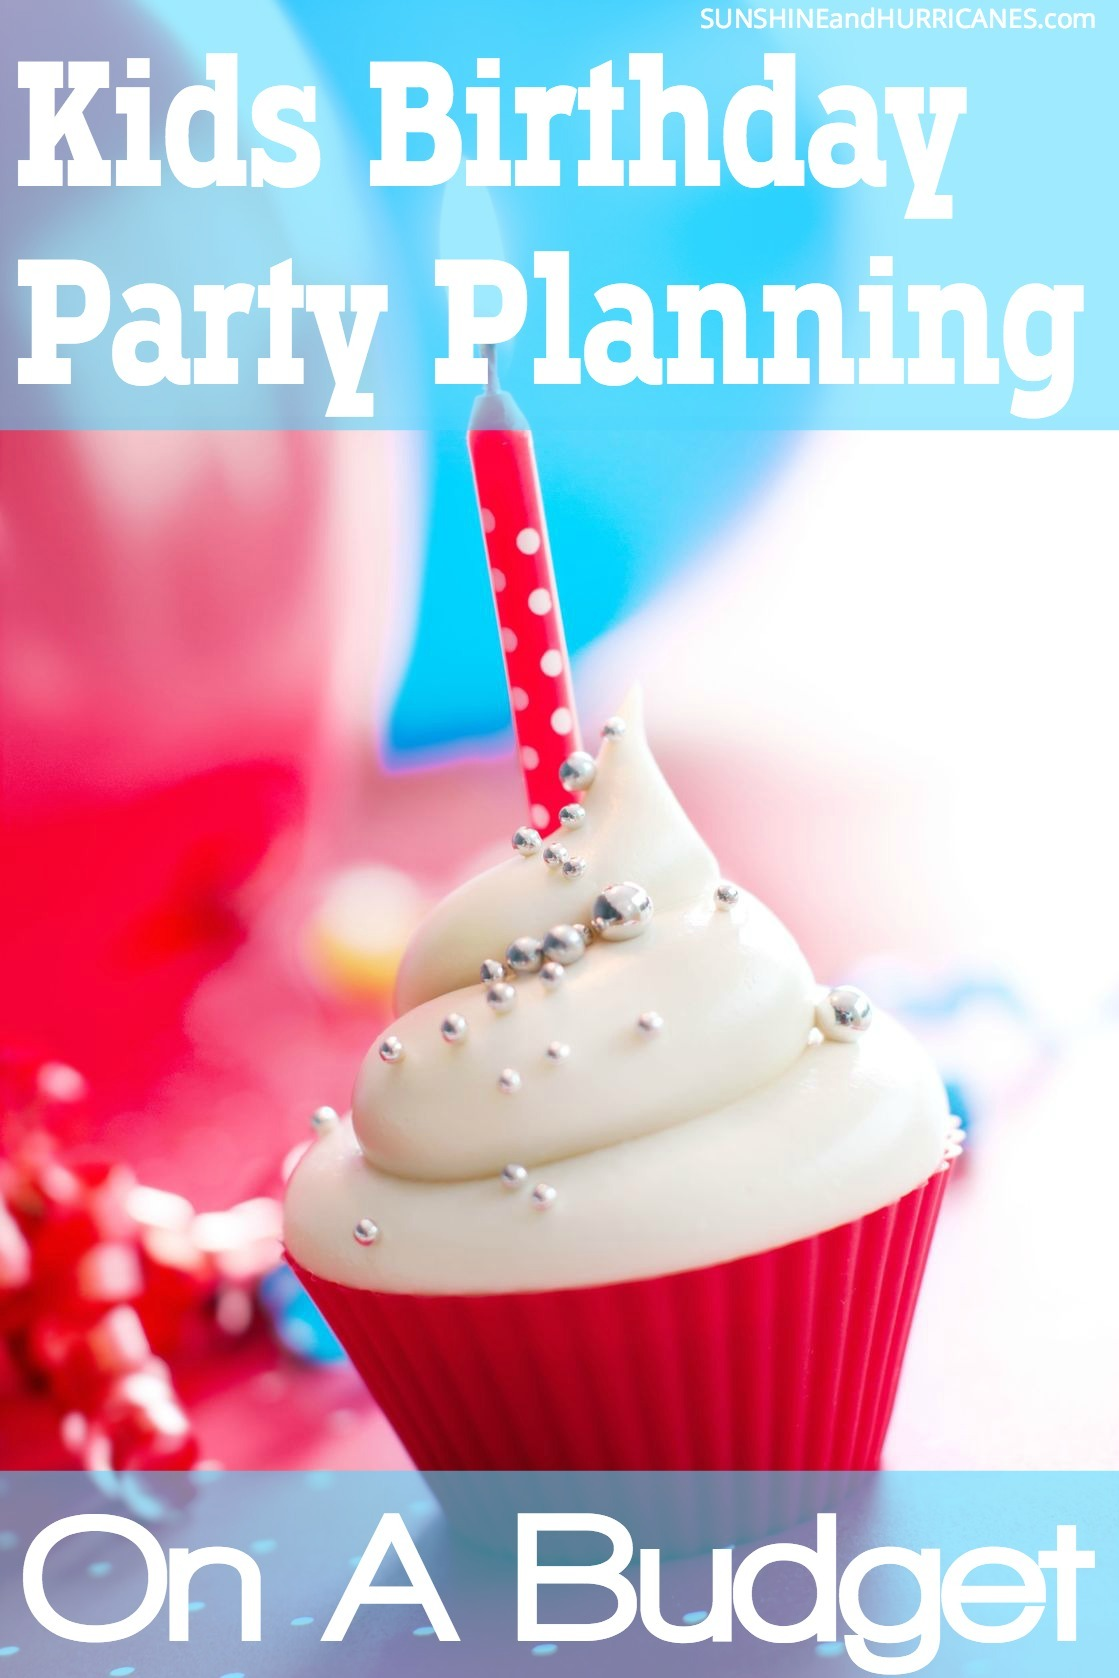 Do you want to throw an Birthday Party that is sure to be tons of fun, but without spending a fortune? It's easy to do and we'll show you how. Kids are far easier to please than we think and there are tons of tips and tricks to make Kids Birthday Parties but totally awesome and completely affordable. Kids Birthday Party Planning on a Budget. SunshineandHurricanes.com